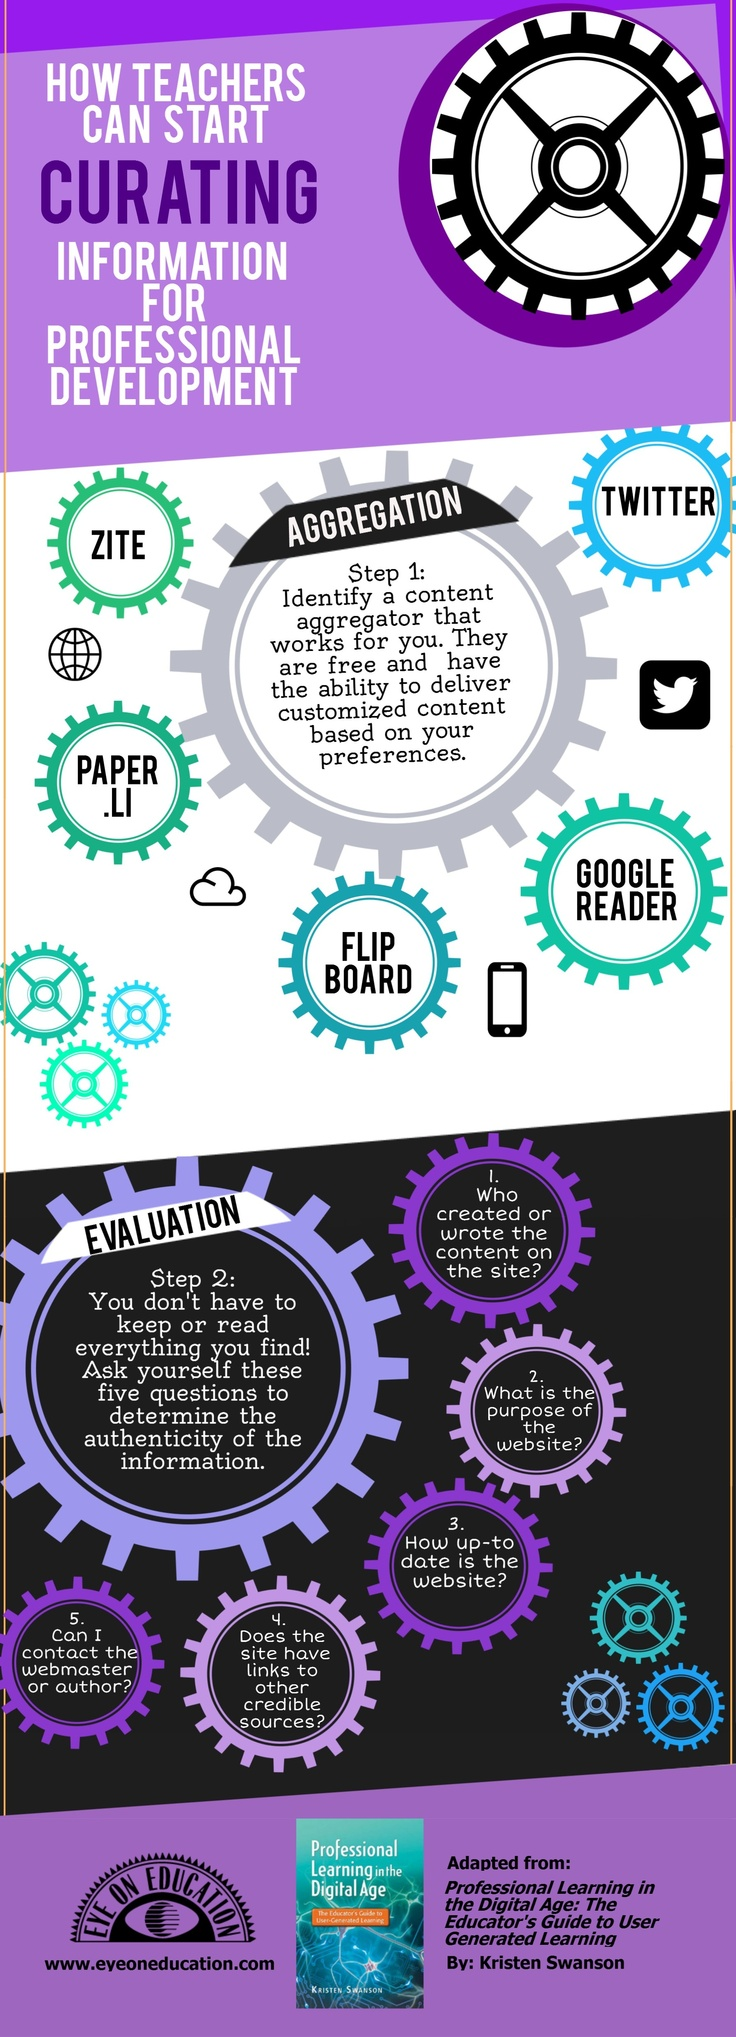 How Teachers Can Start Curating Information for Professional Development